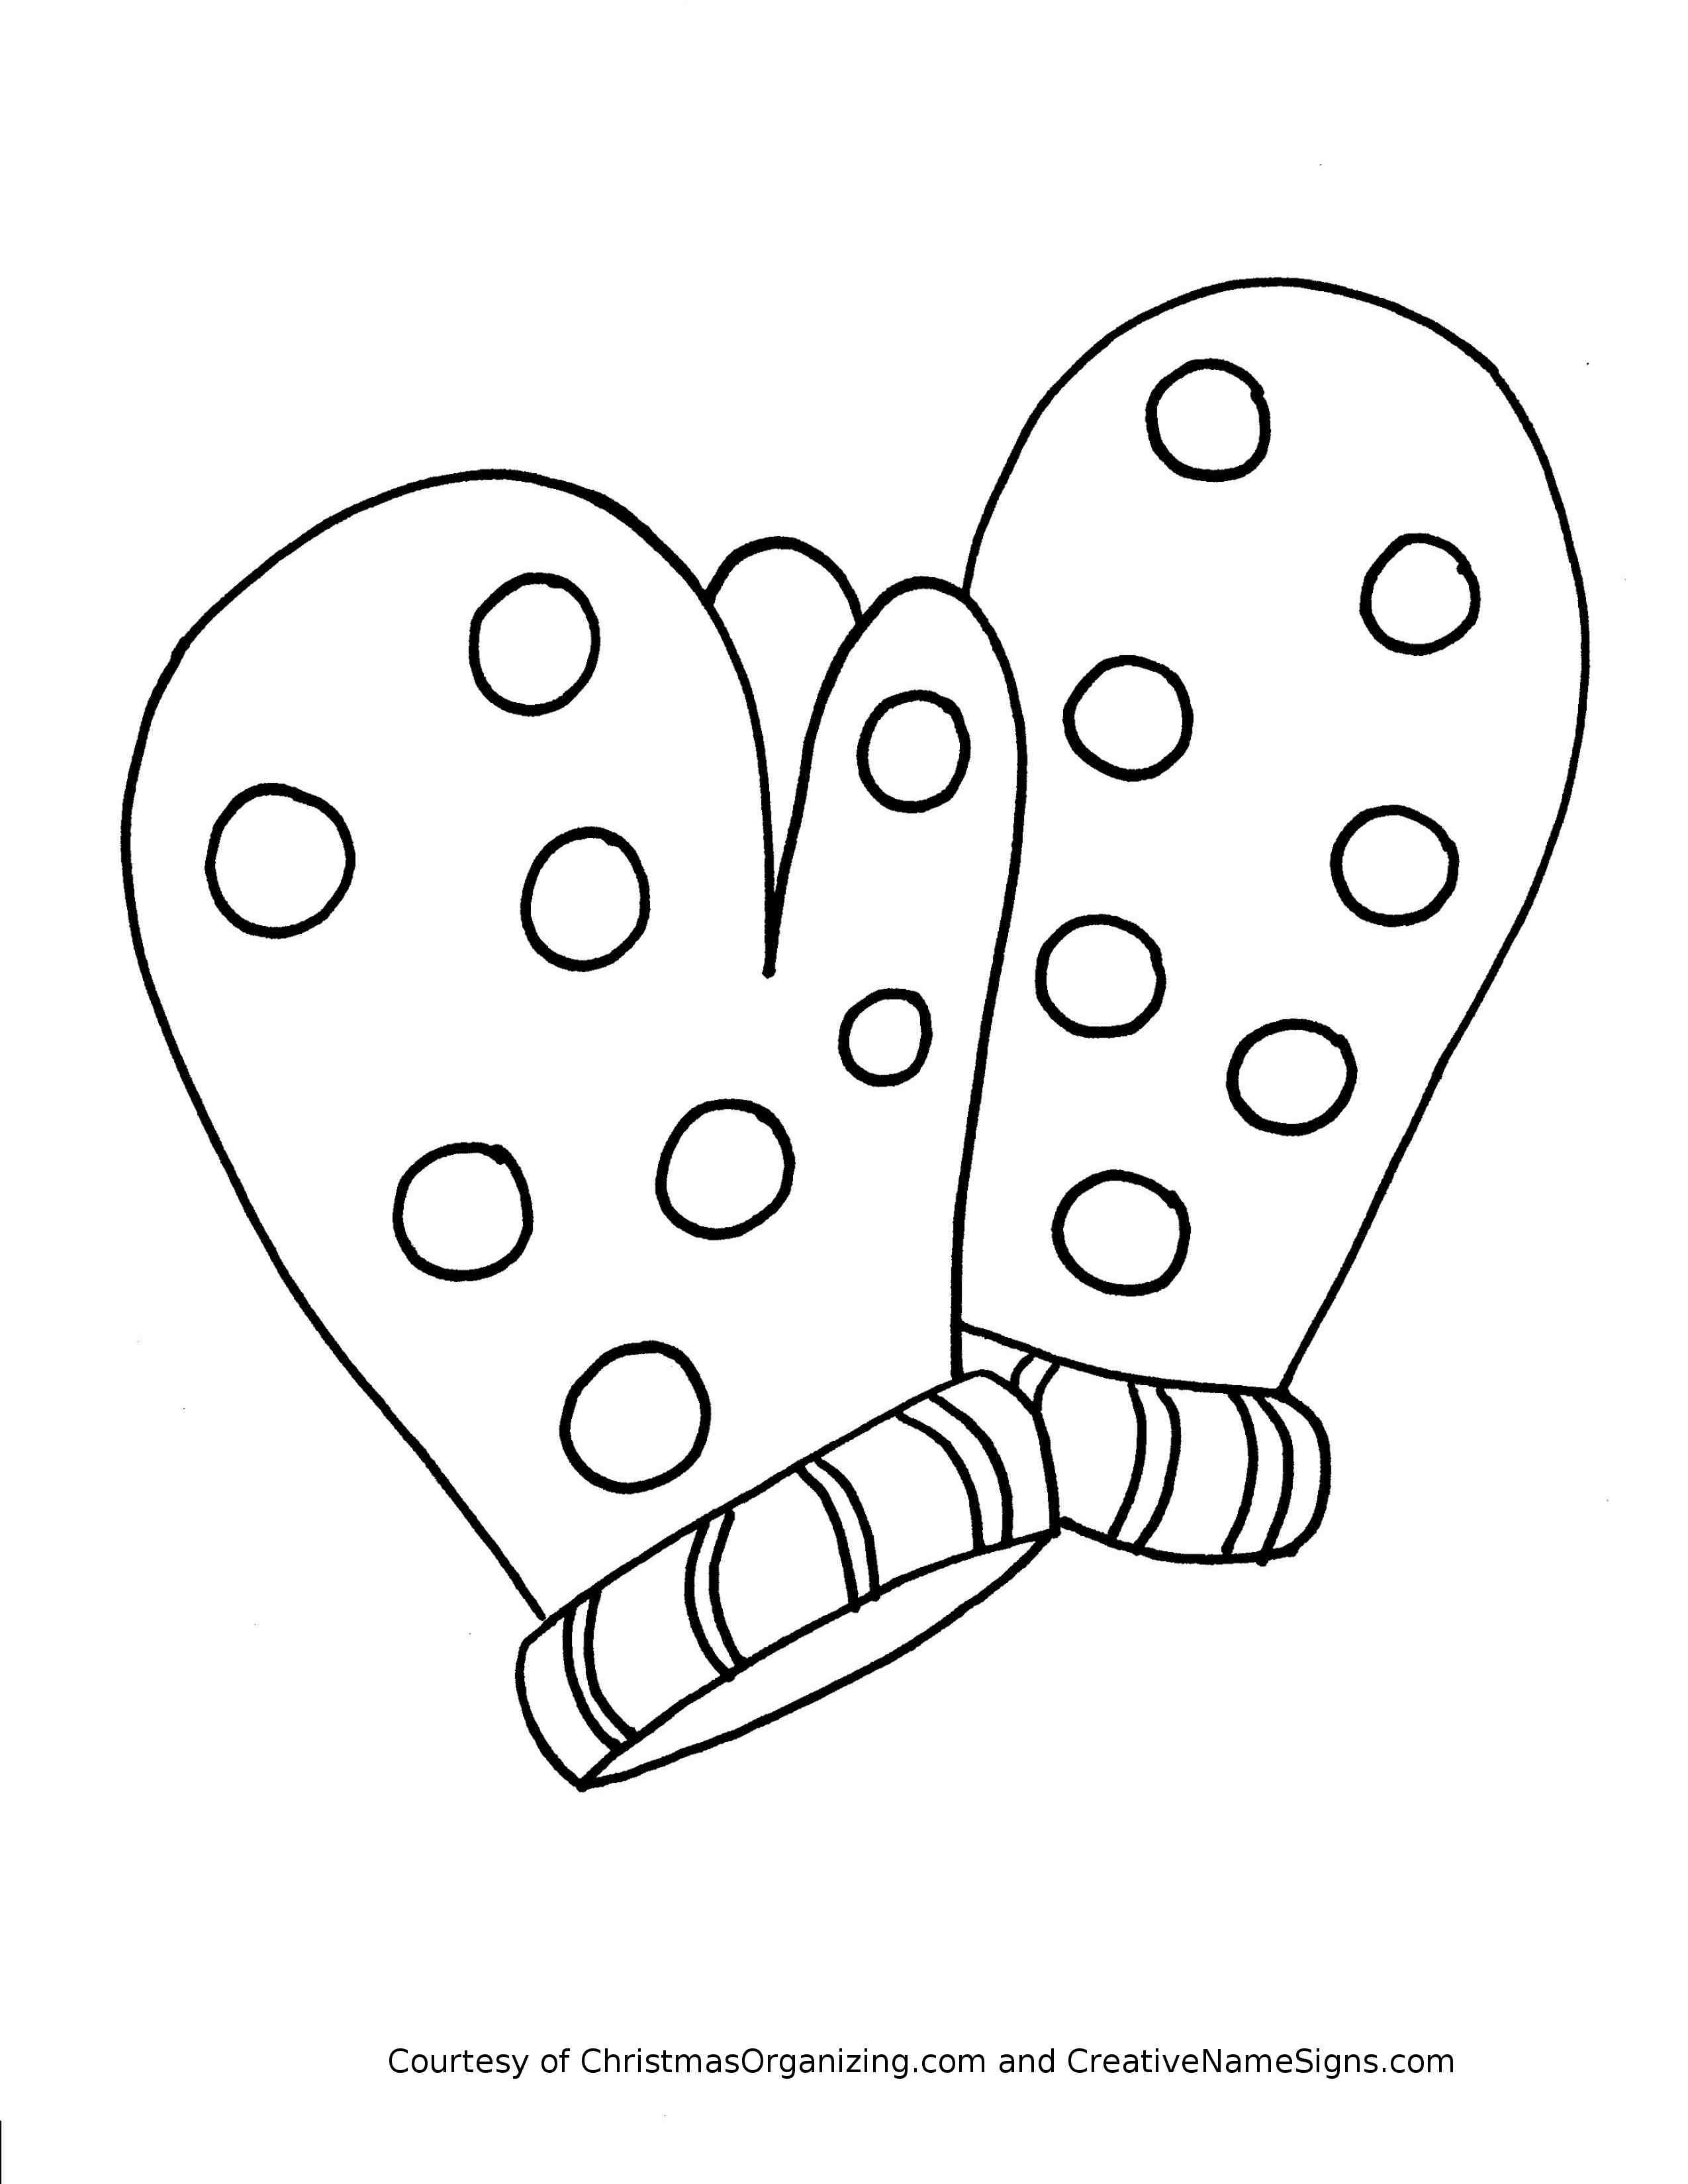 mitten coloring pages mitten drawing at getdrawings free download mitten coloring pages